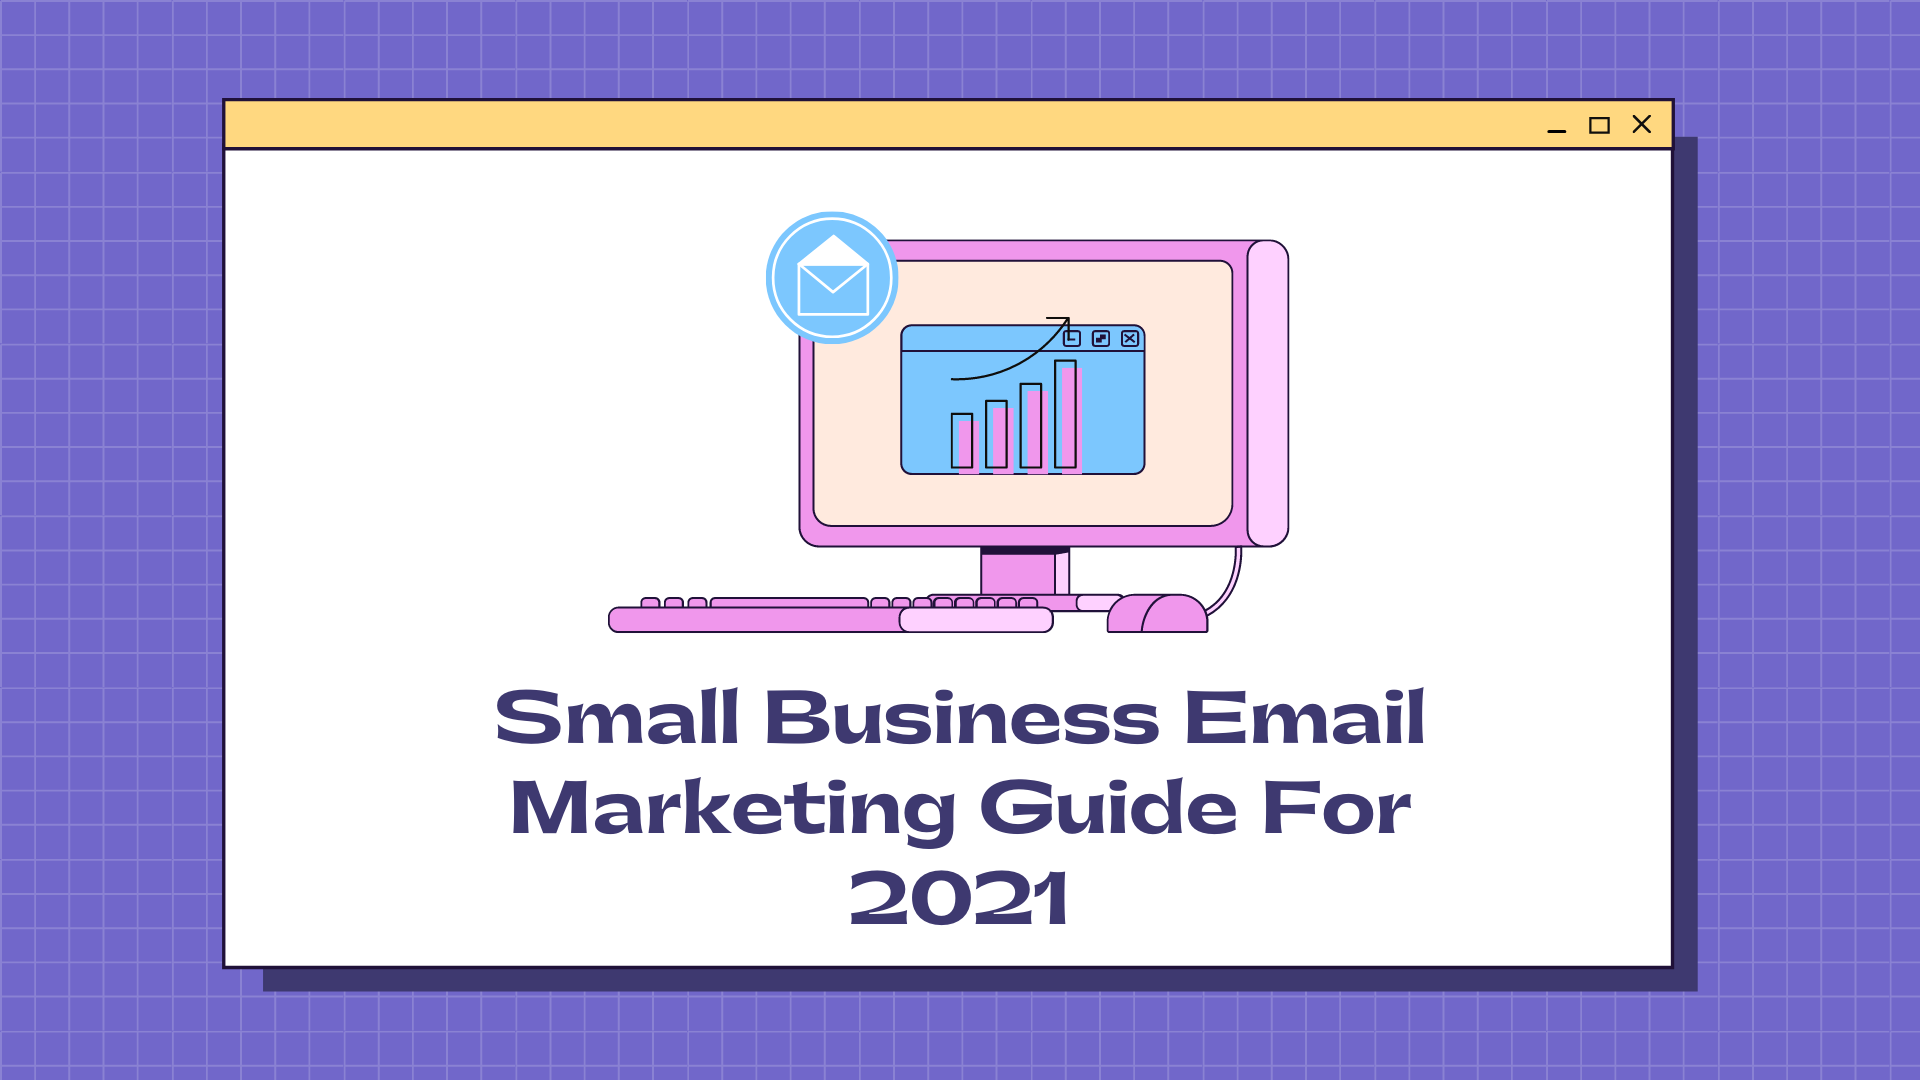 Small business email marketing guide